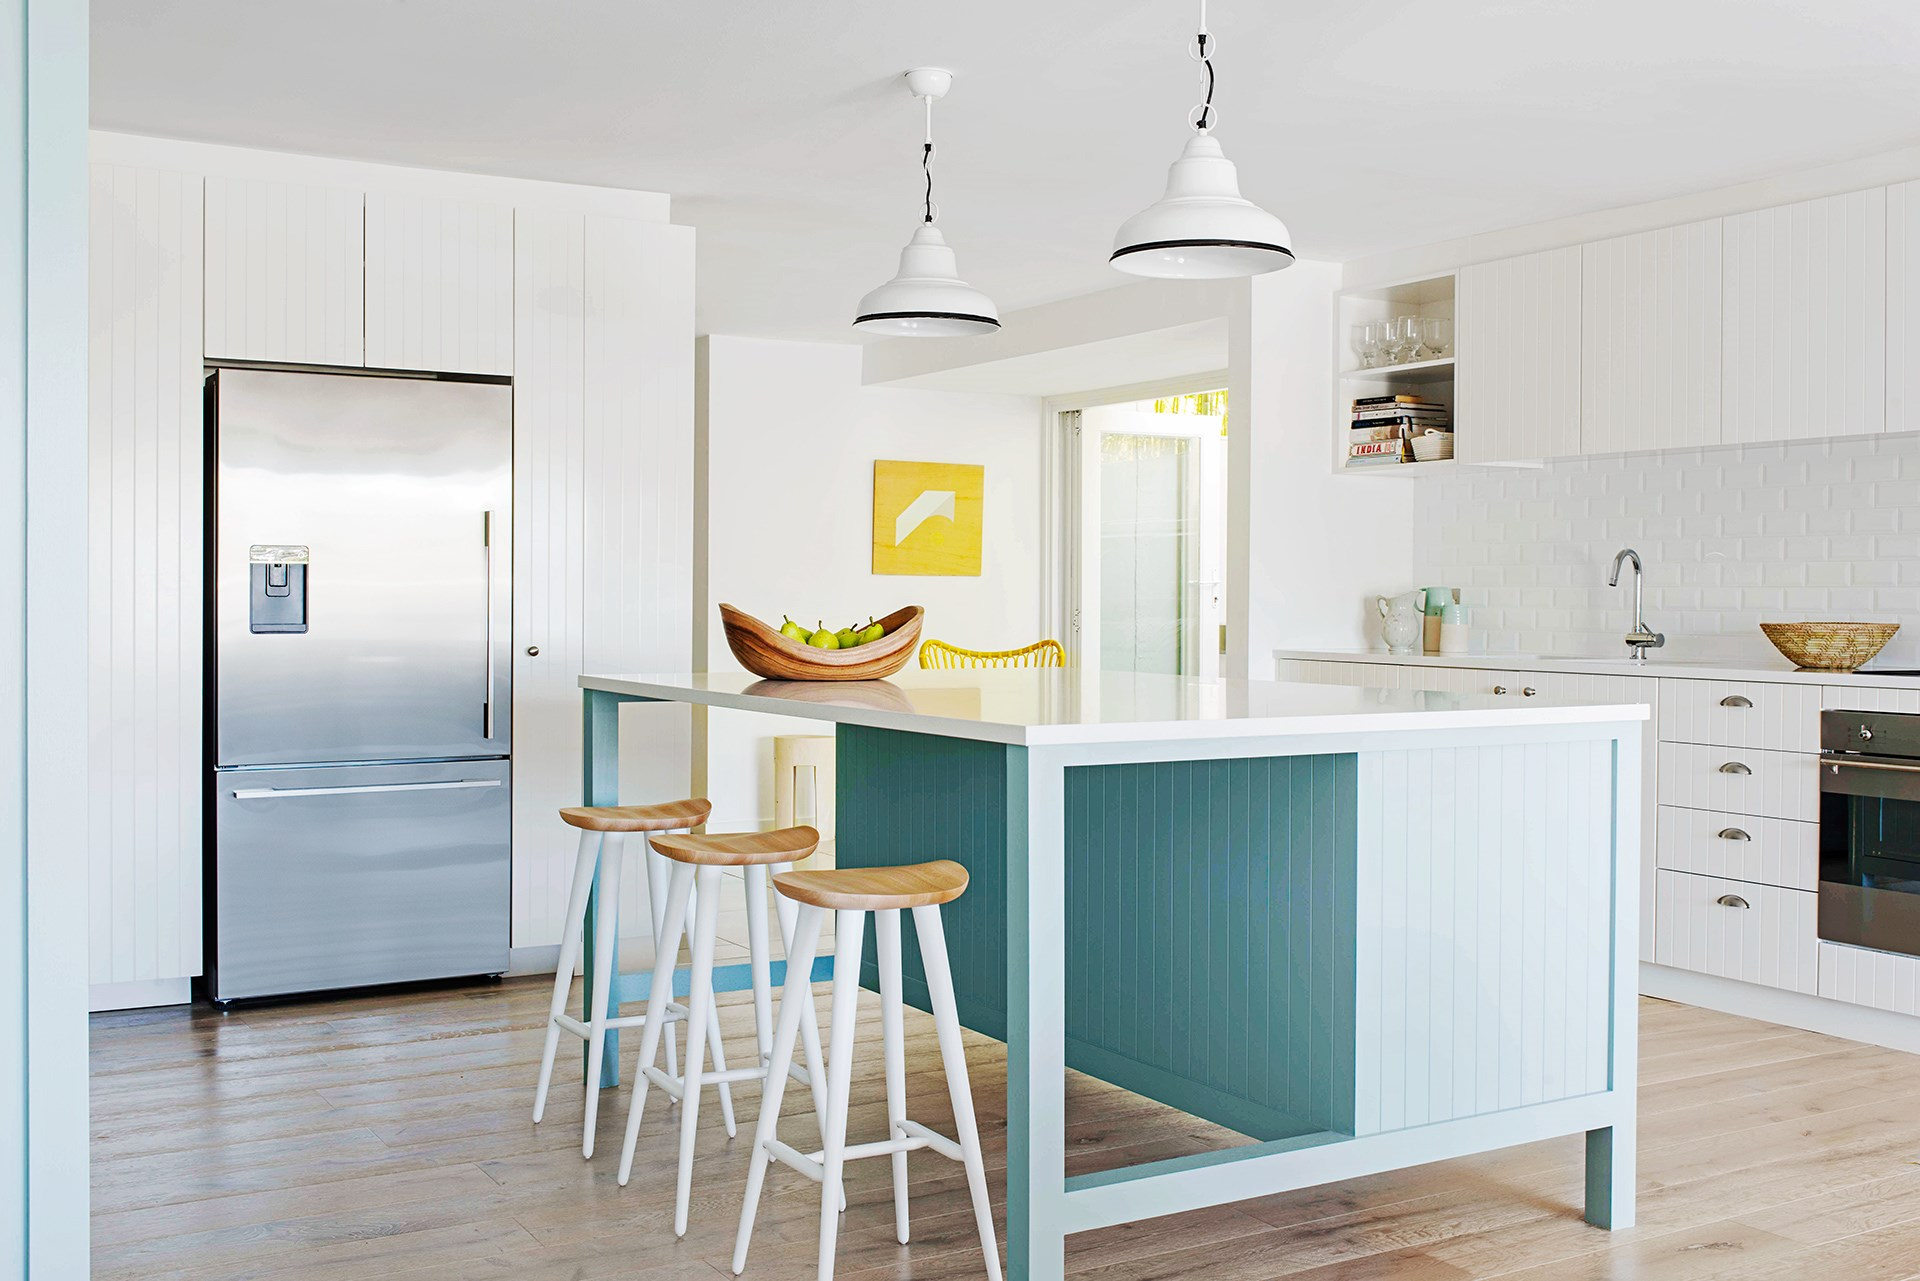 """A dusty shade of blue with a splash of yellow is a modern take on a classic beachy colour combo that perfectly suits this [Sydney beach house](http://www.homestolove.com.au/textured-modern-beach-house-in-sydney-2090